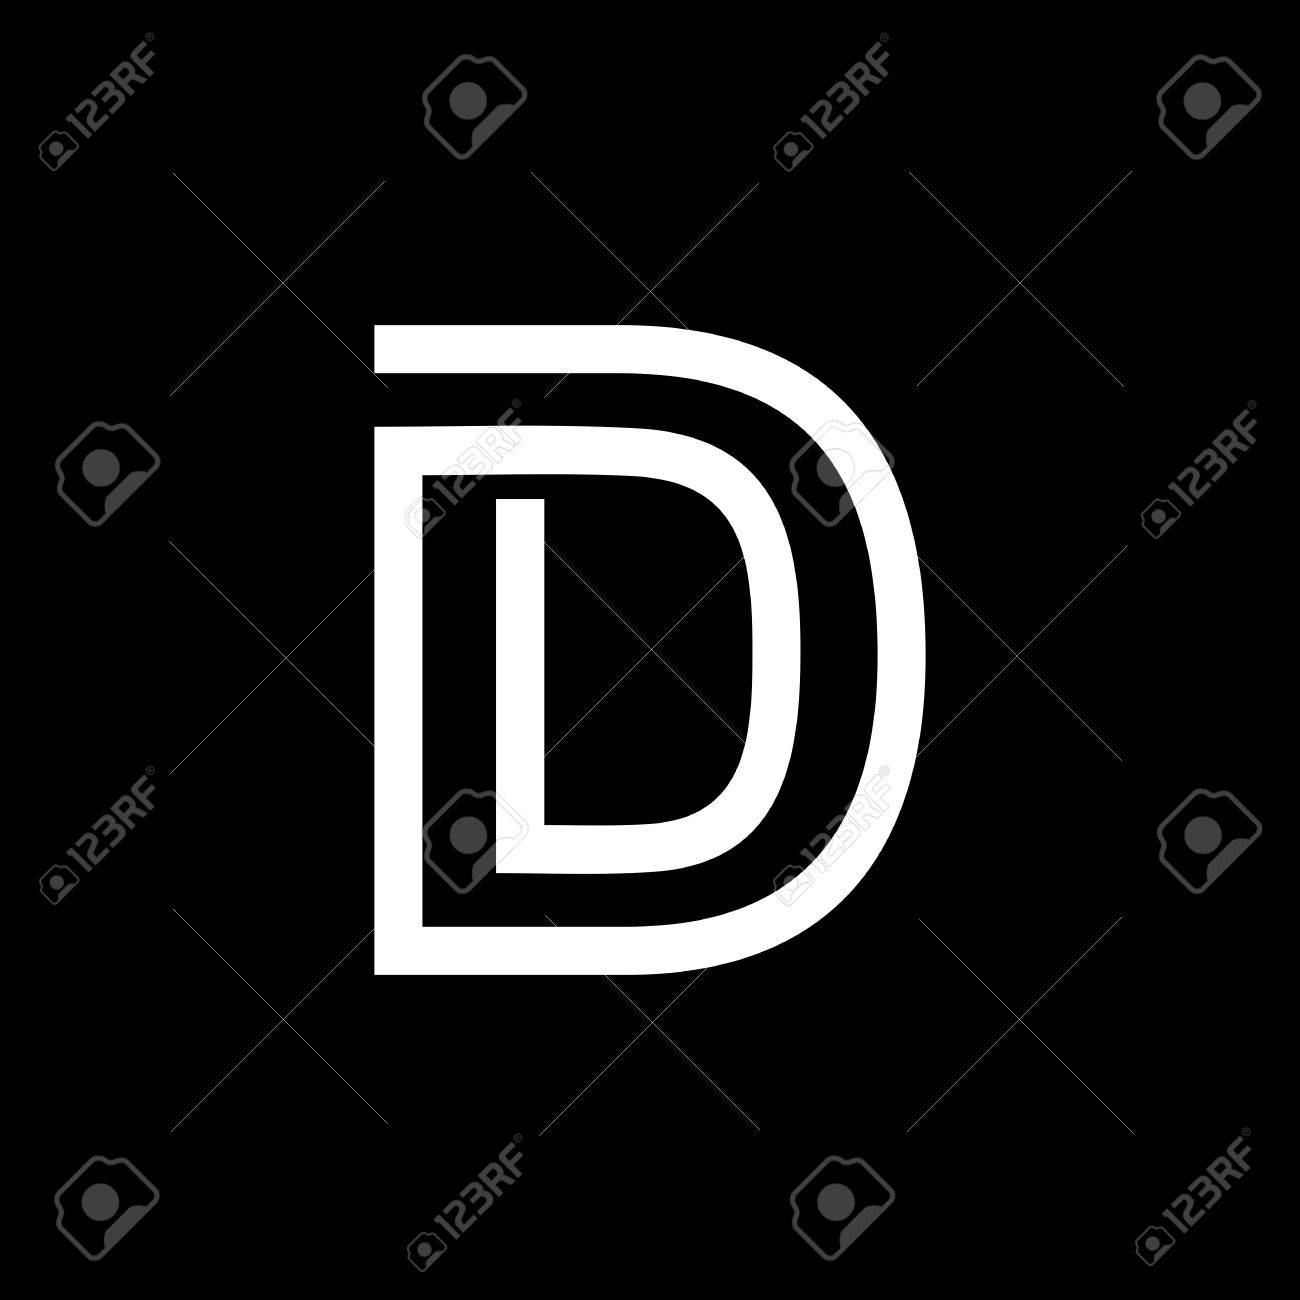 Capital Letter D From The White Interwoven Strips On A Black